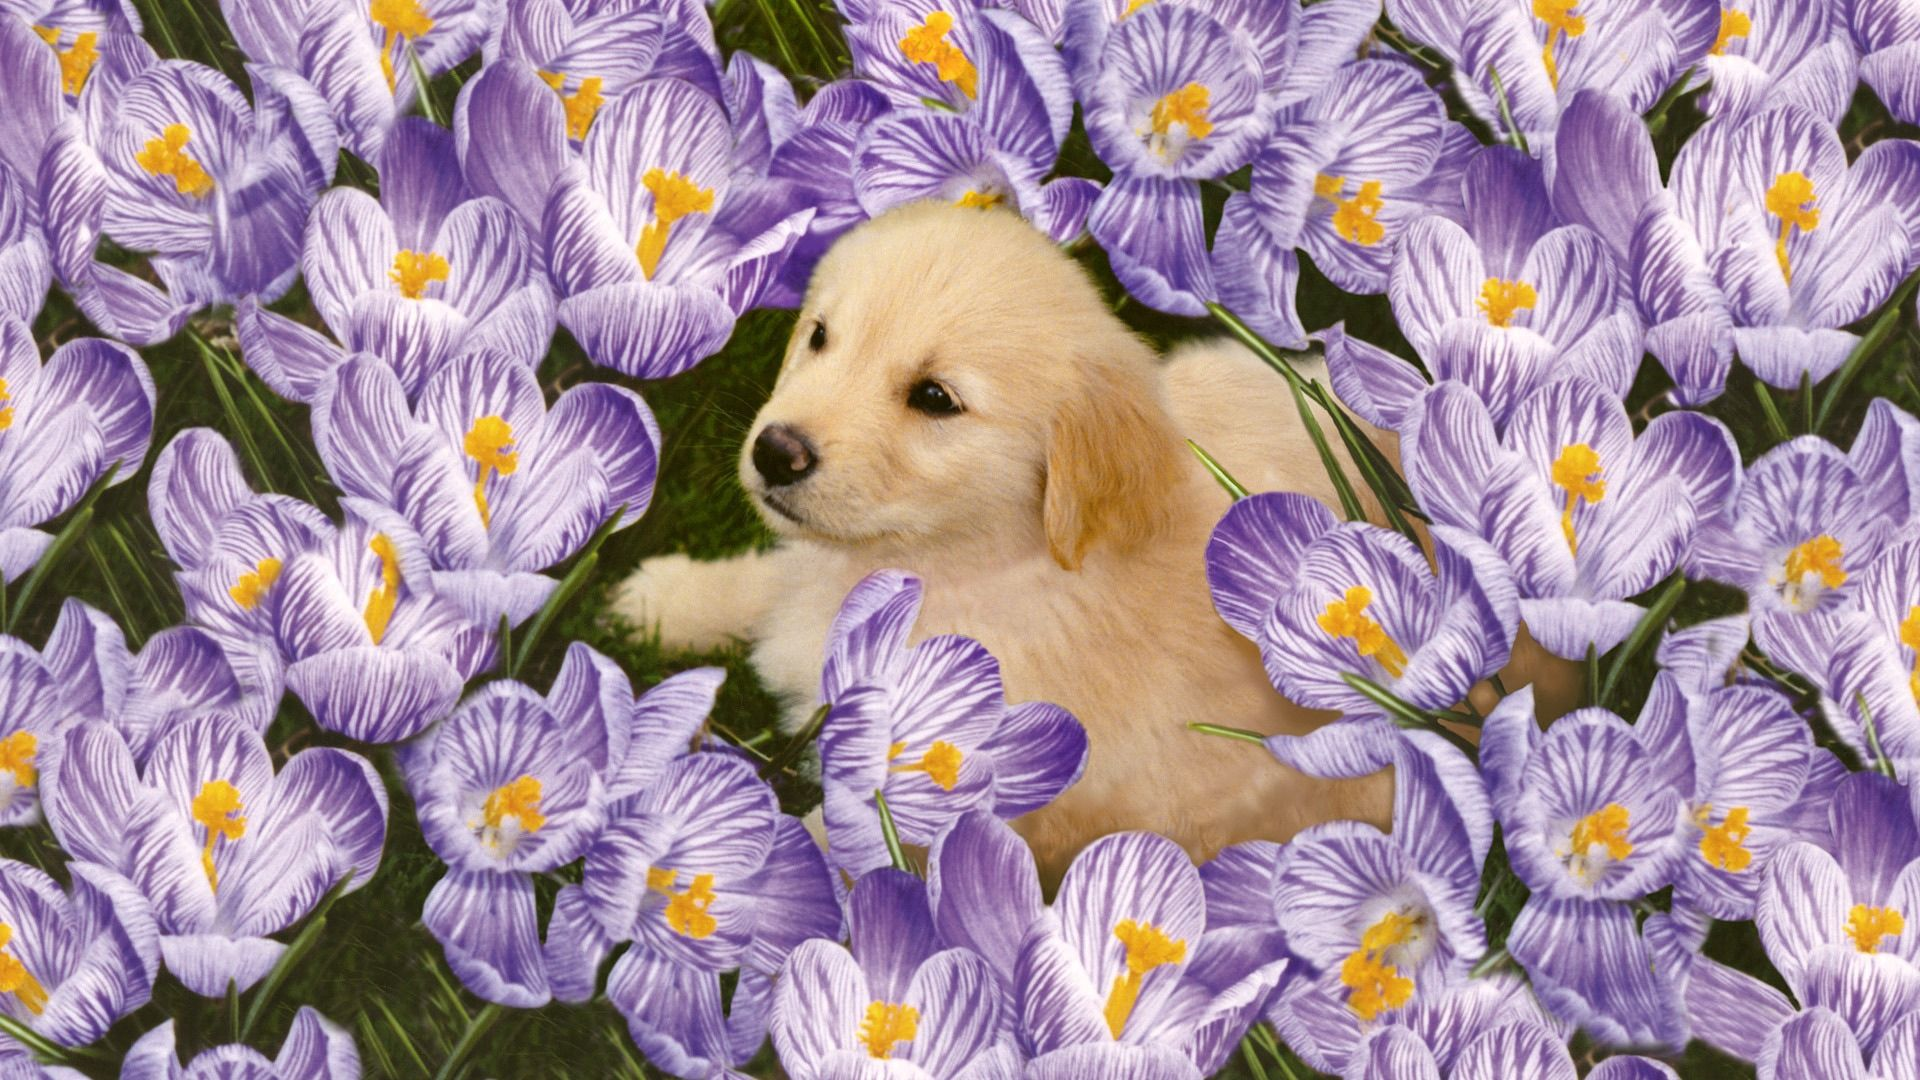 56807 download wallpaper Animals, Labrador, Puppy, Flowers screensavers and pictures for free